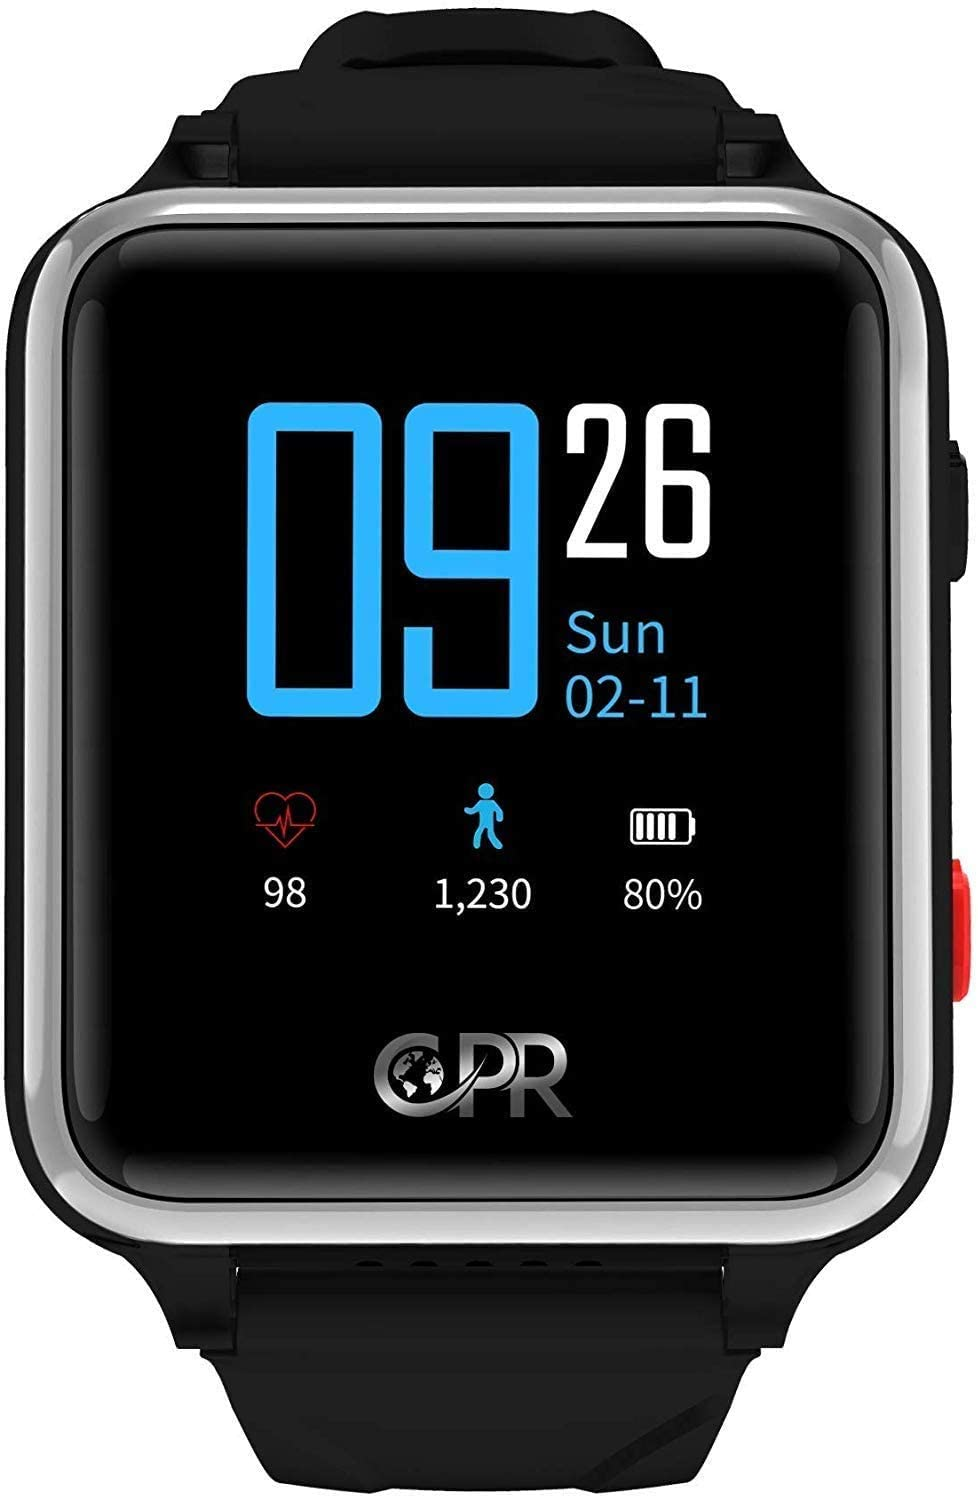 CPR Guardian II Personal Alarm with Emergency Assist Button